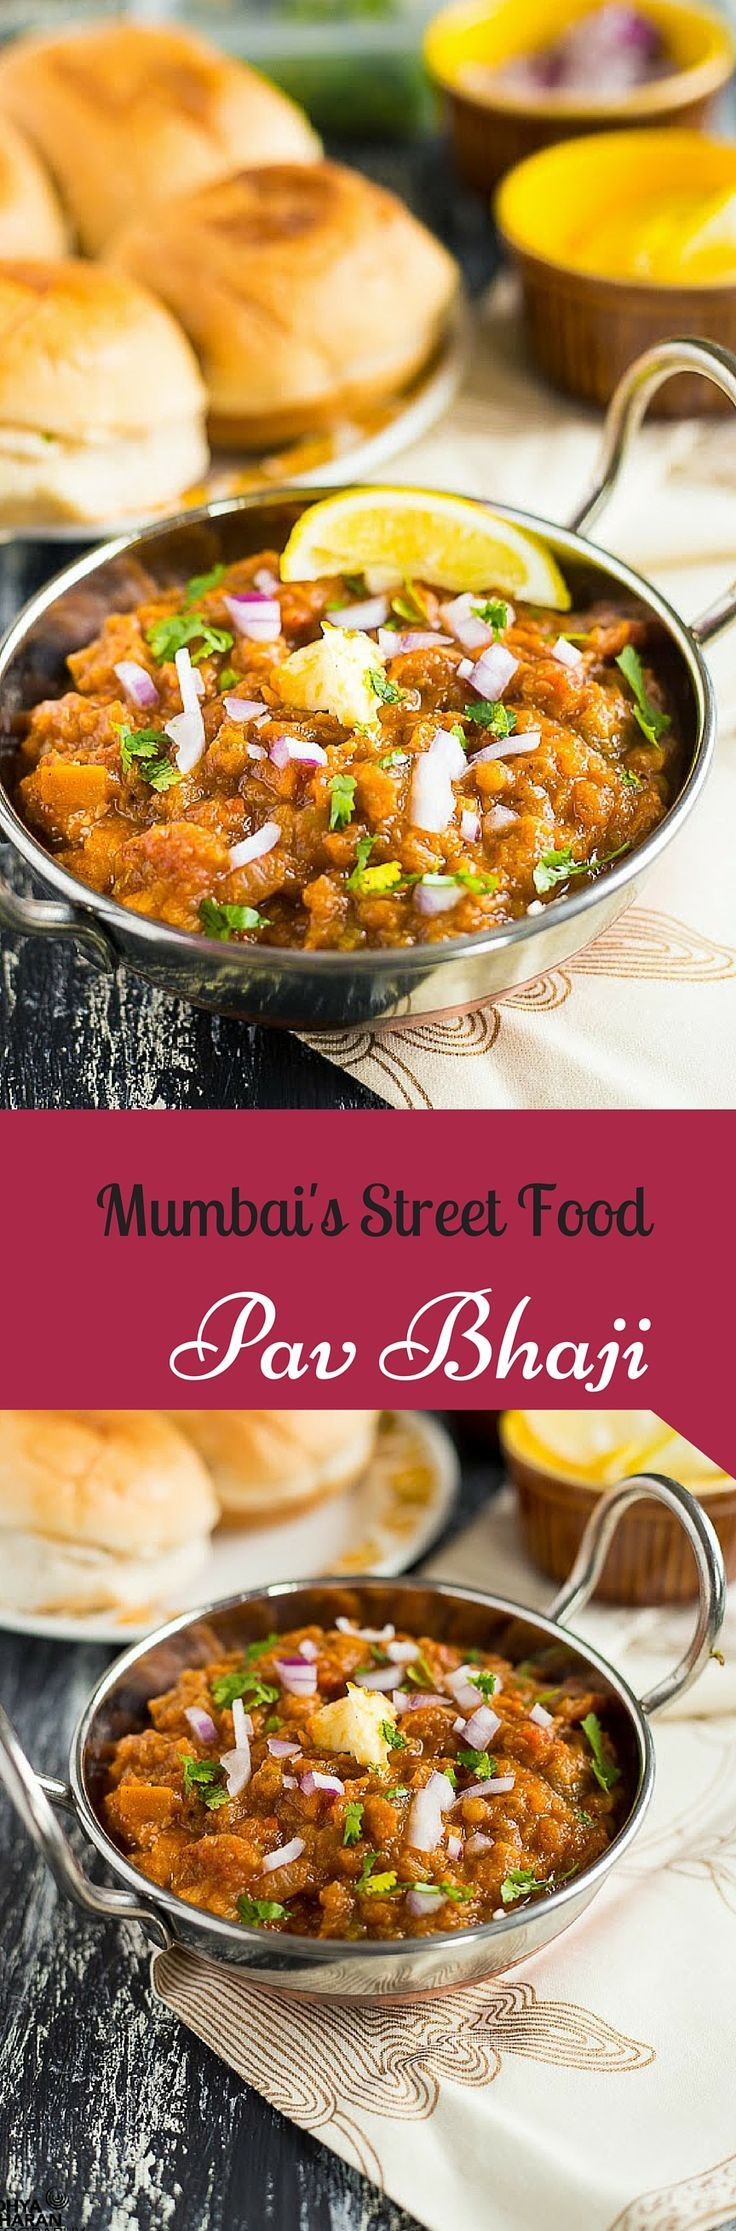 Pav Bhaji… a toungue tickling & mouth watering dish that any Mumbai wala cant resist. Specially the ones made in Juhu Beach…& the ones by the road side telawala(cart guys). They have got a magic ingredient that draws anyone & everyone to their stand.